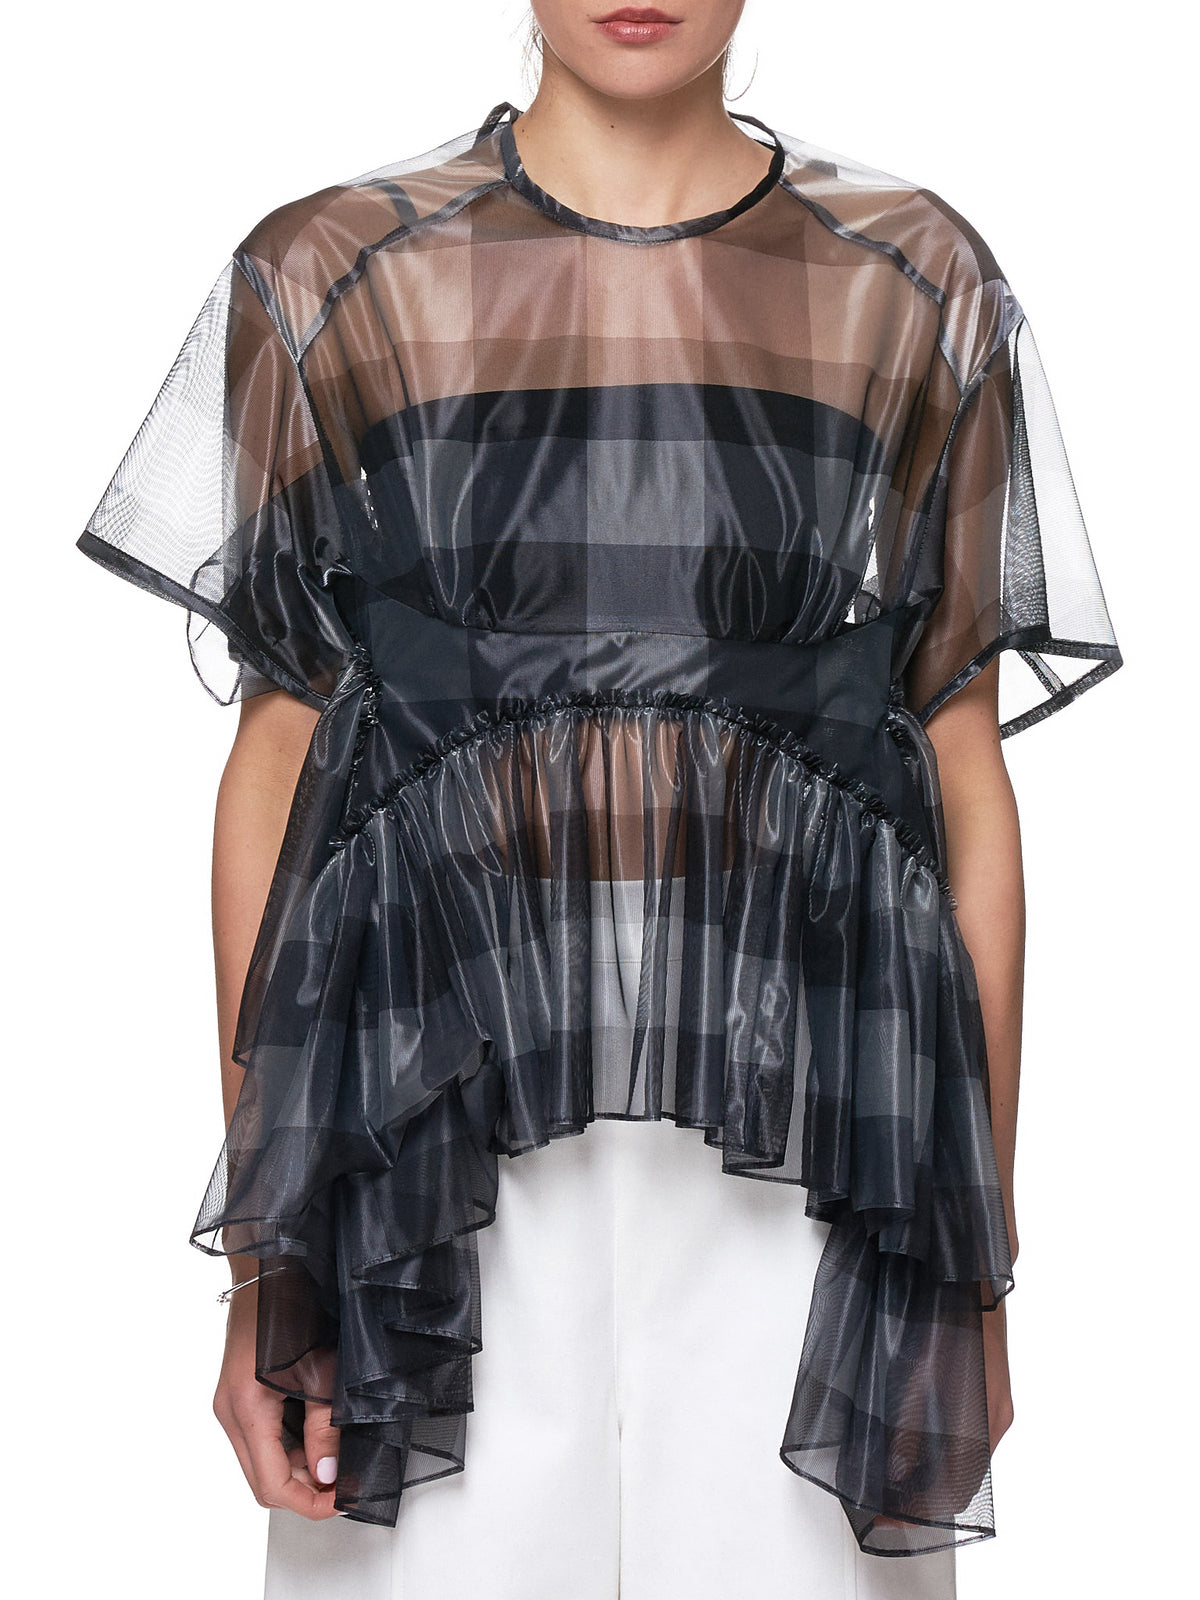 Translucent Top (191-BL06-BLACK)